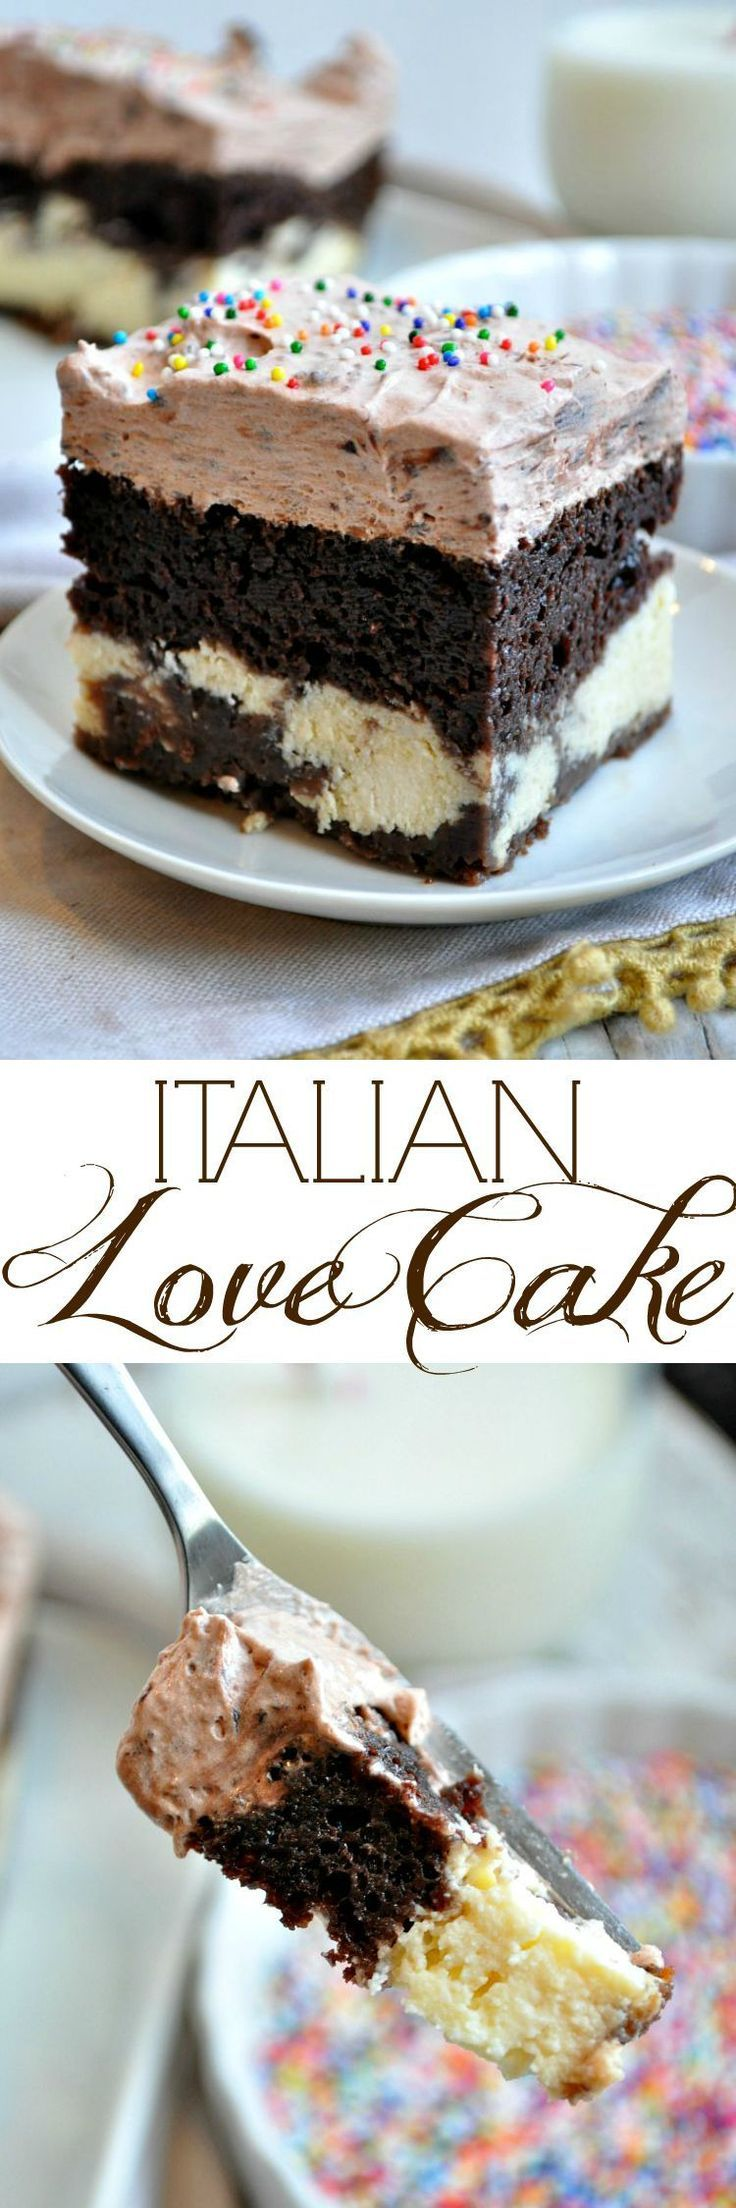 The perfect dessert for Valentine's Day!!! Layers of Chocolate Italian Love Cake -- so easy that your kids can make it! #dessert #valentinesday #cake